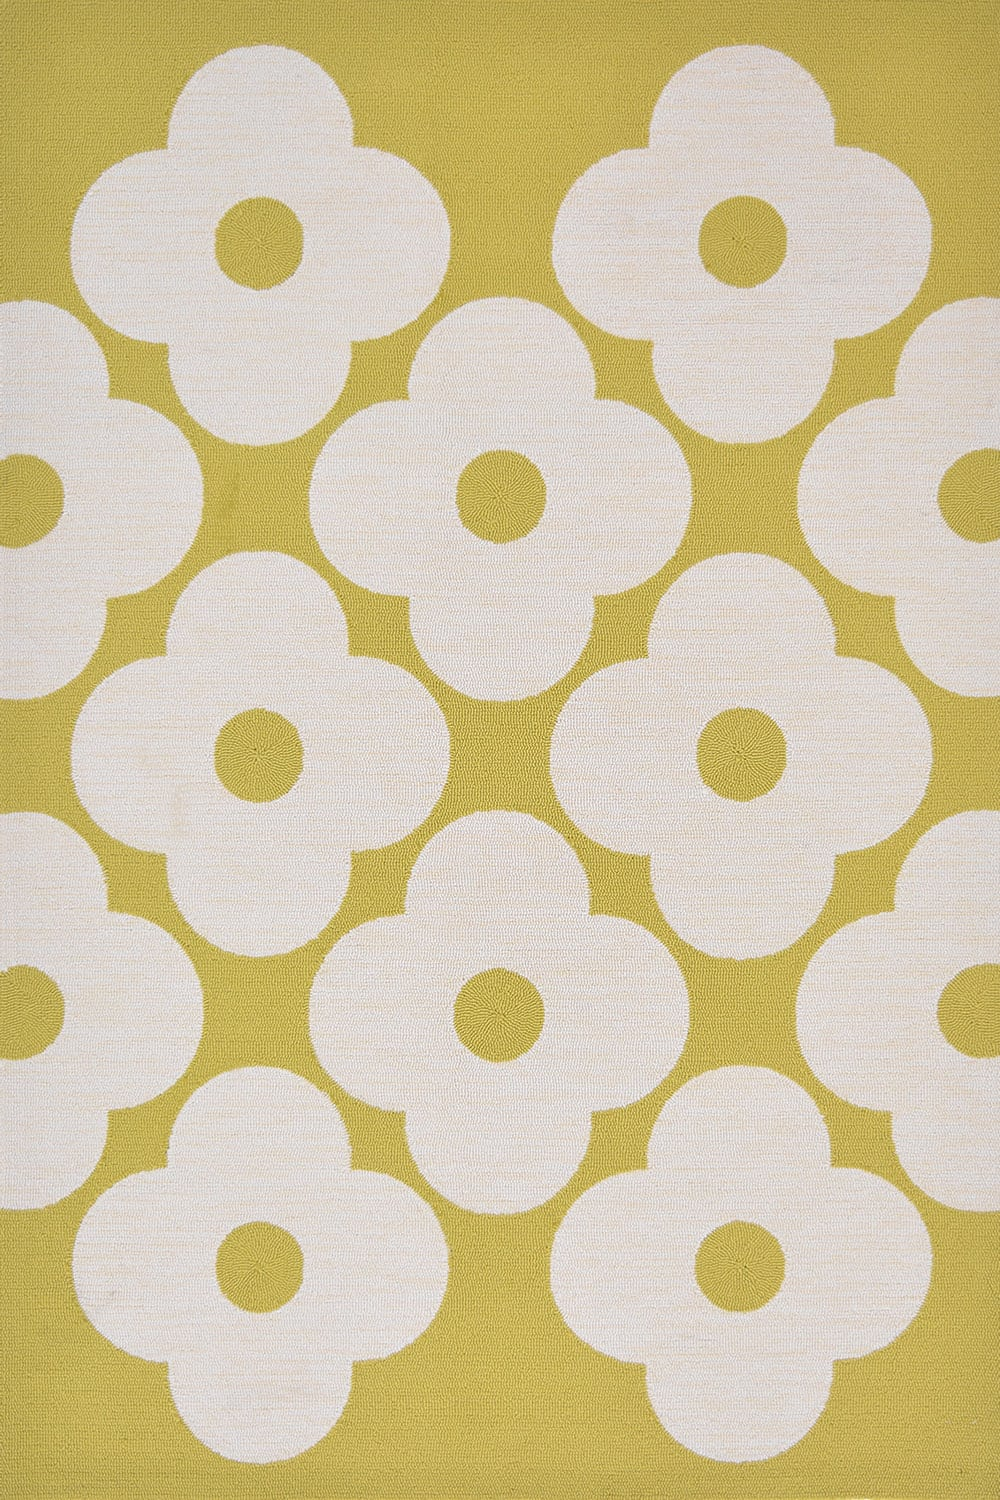 Χαλί Spot Flower 460806 Yellow-White Orla Kiely 160X230